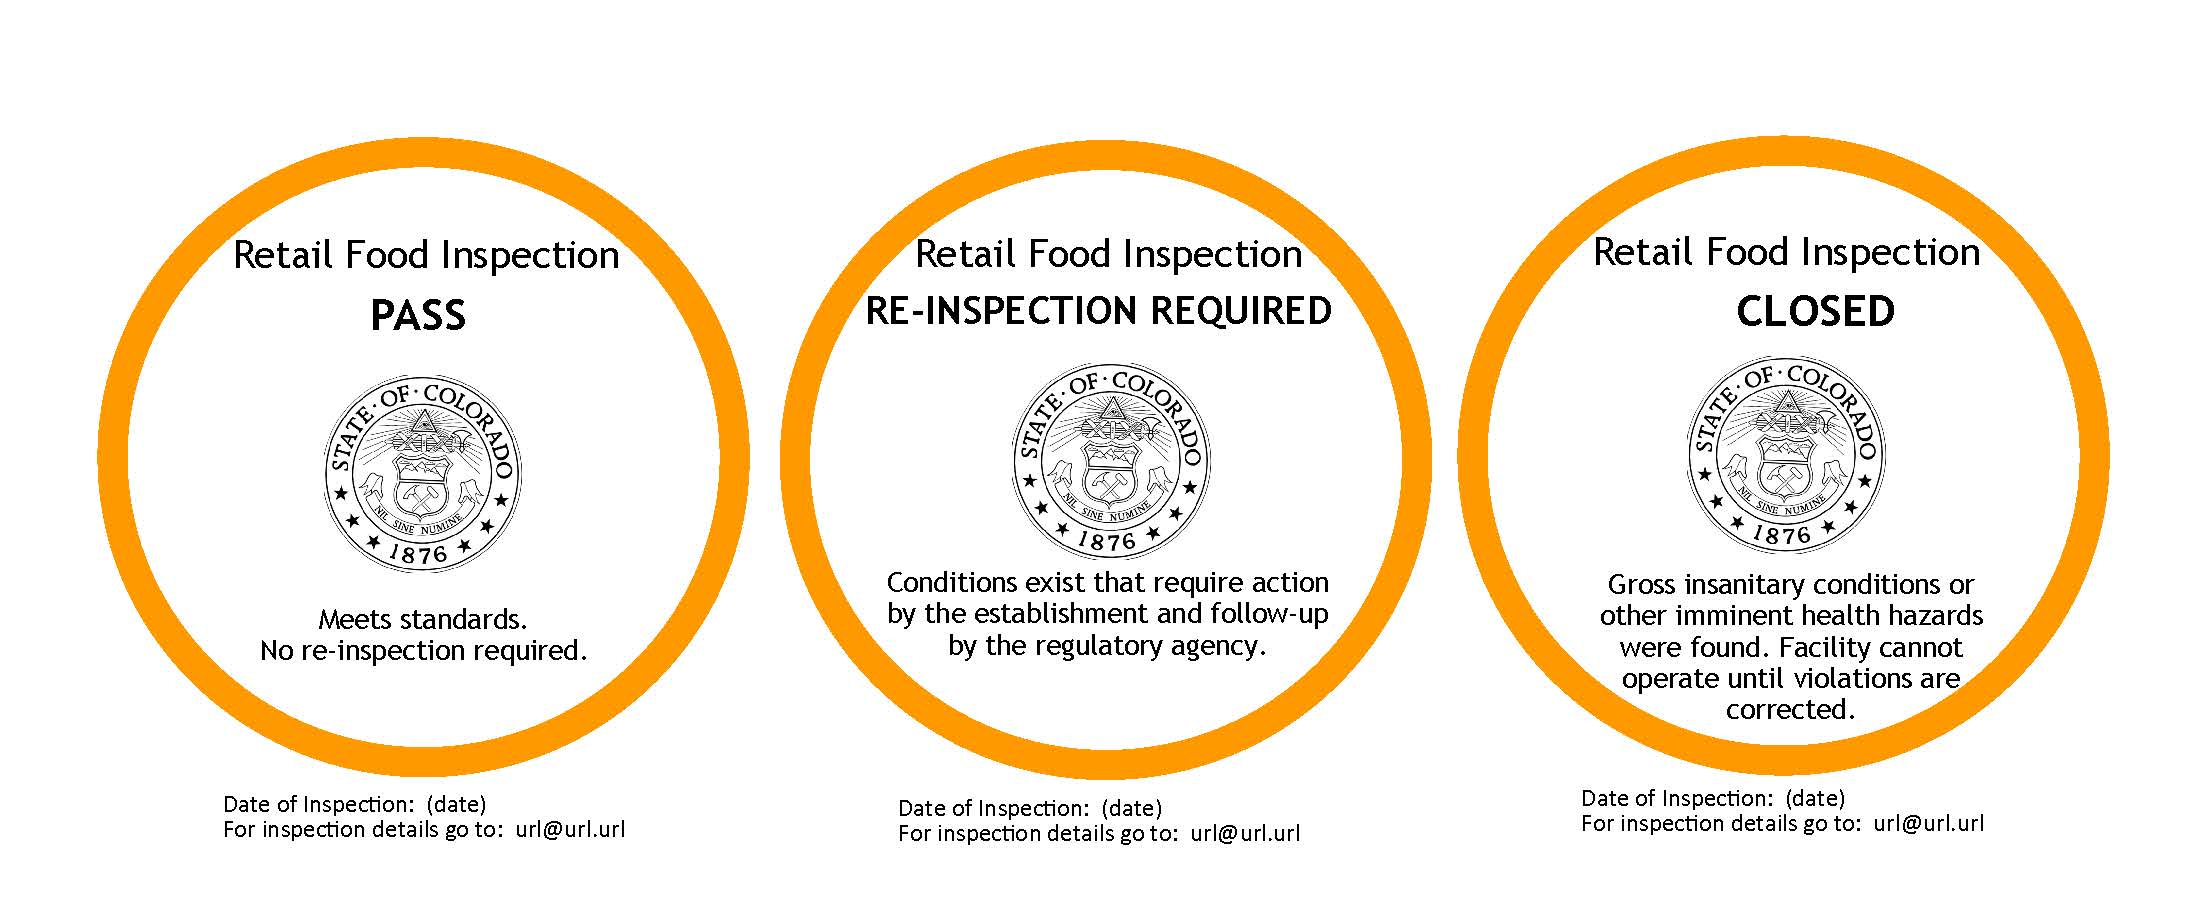 """The next question refers to the current Colorado Retail Food Establishment Inspection Rating System and is pictured below. Following a food safety inspection, the retail food establishment is ratedas """"Pass"""", """"Re-inspection Required"""", or """"Closed."""""""